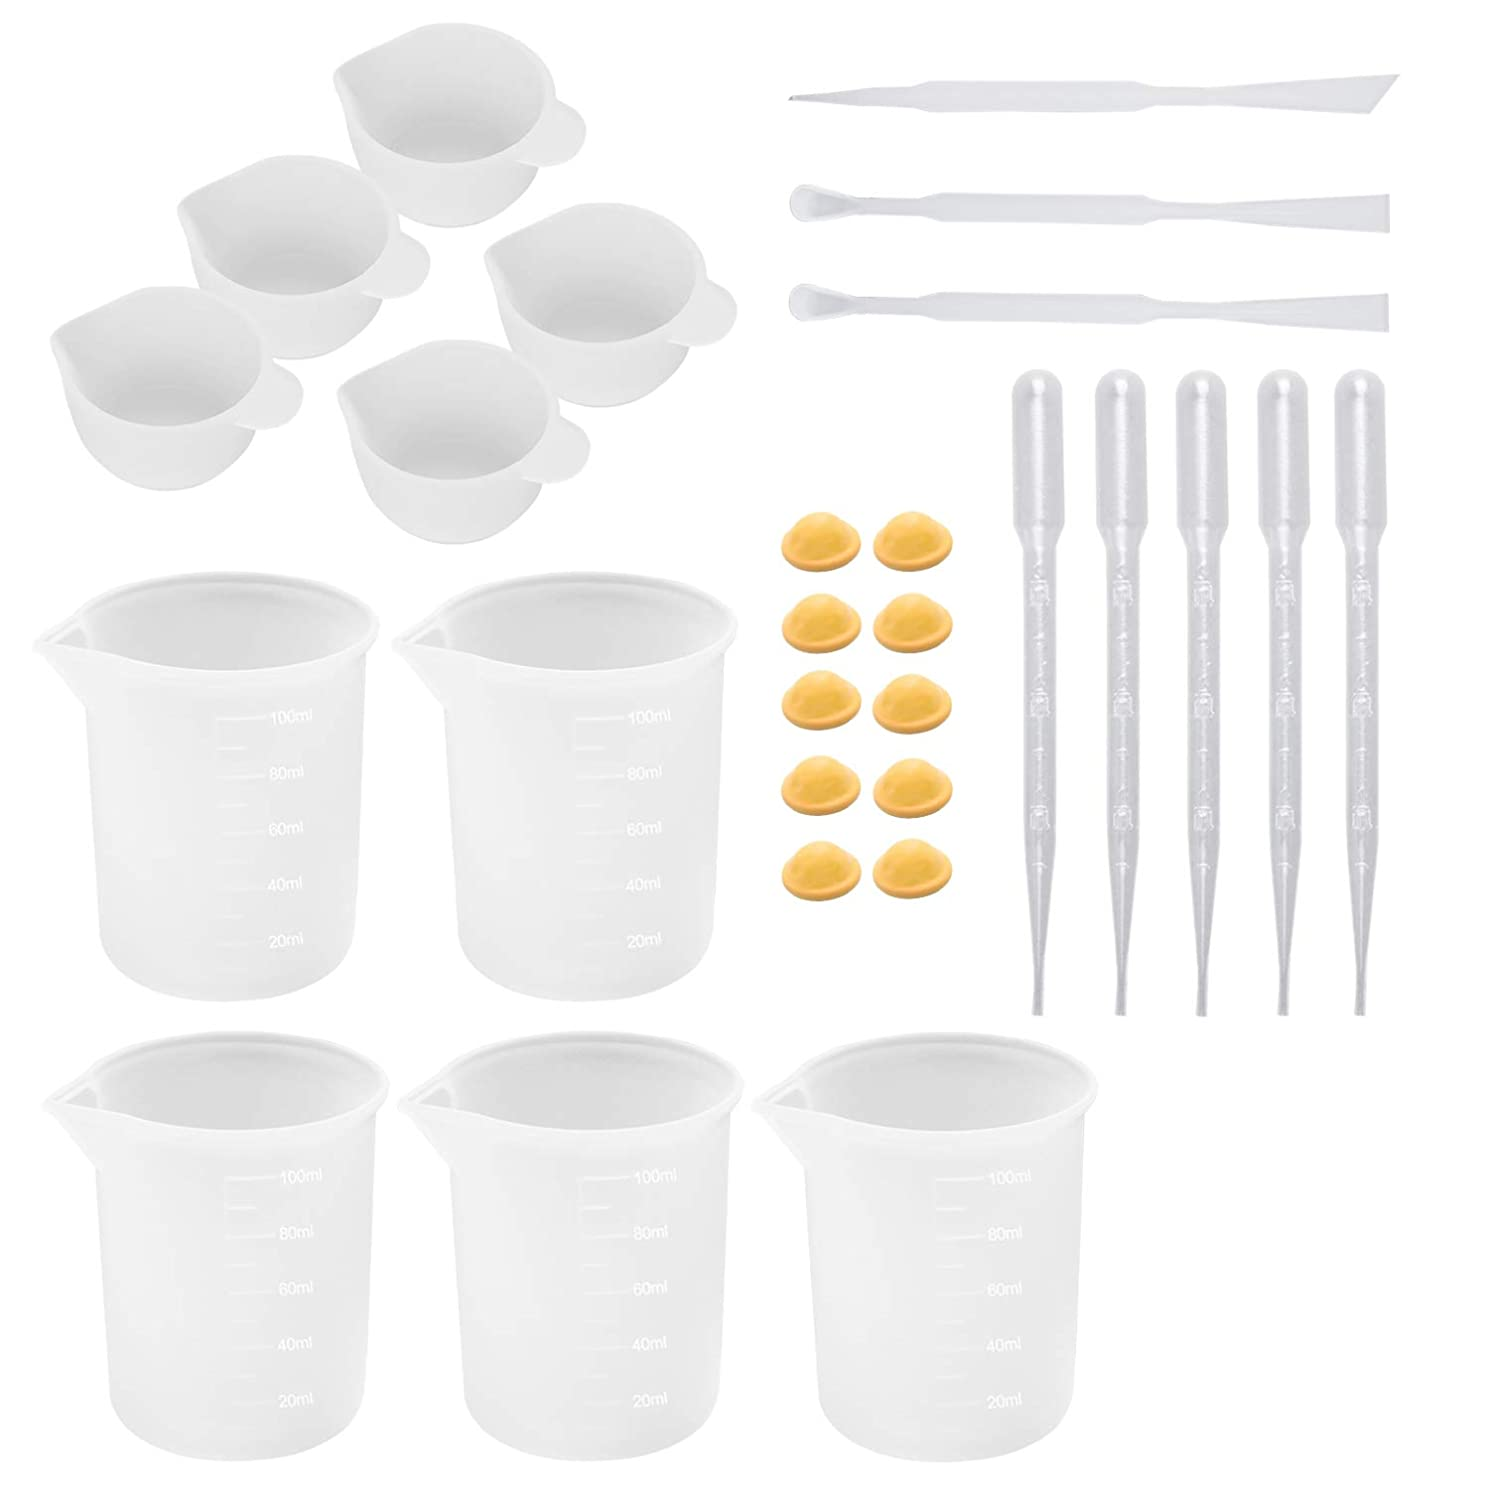 28 Pieces Silicone Cups and Tools Set Silicone Measuring Cups Mixing Cups Glue Tools Sticks Spoons Finger Cots Droppers for Epoxy Resin Casting Molds Slime Art Waxing